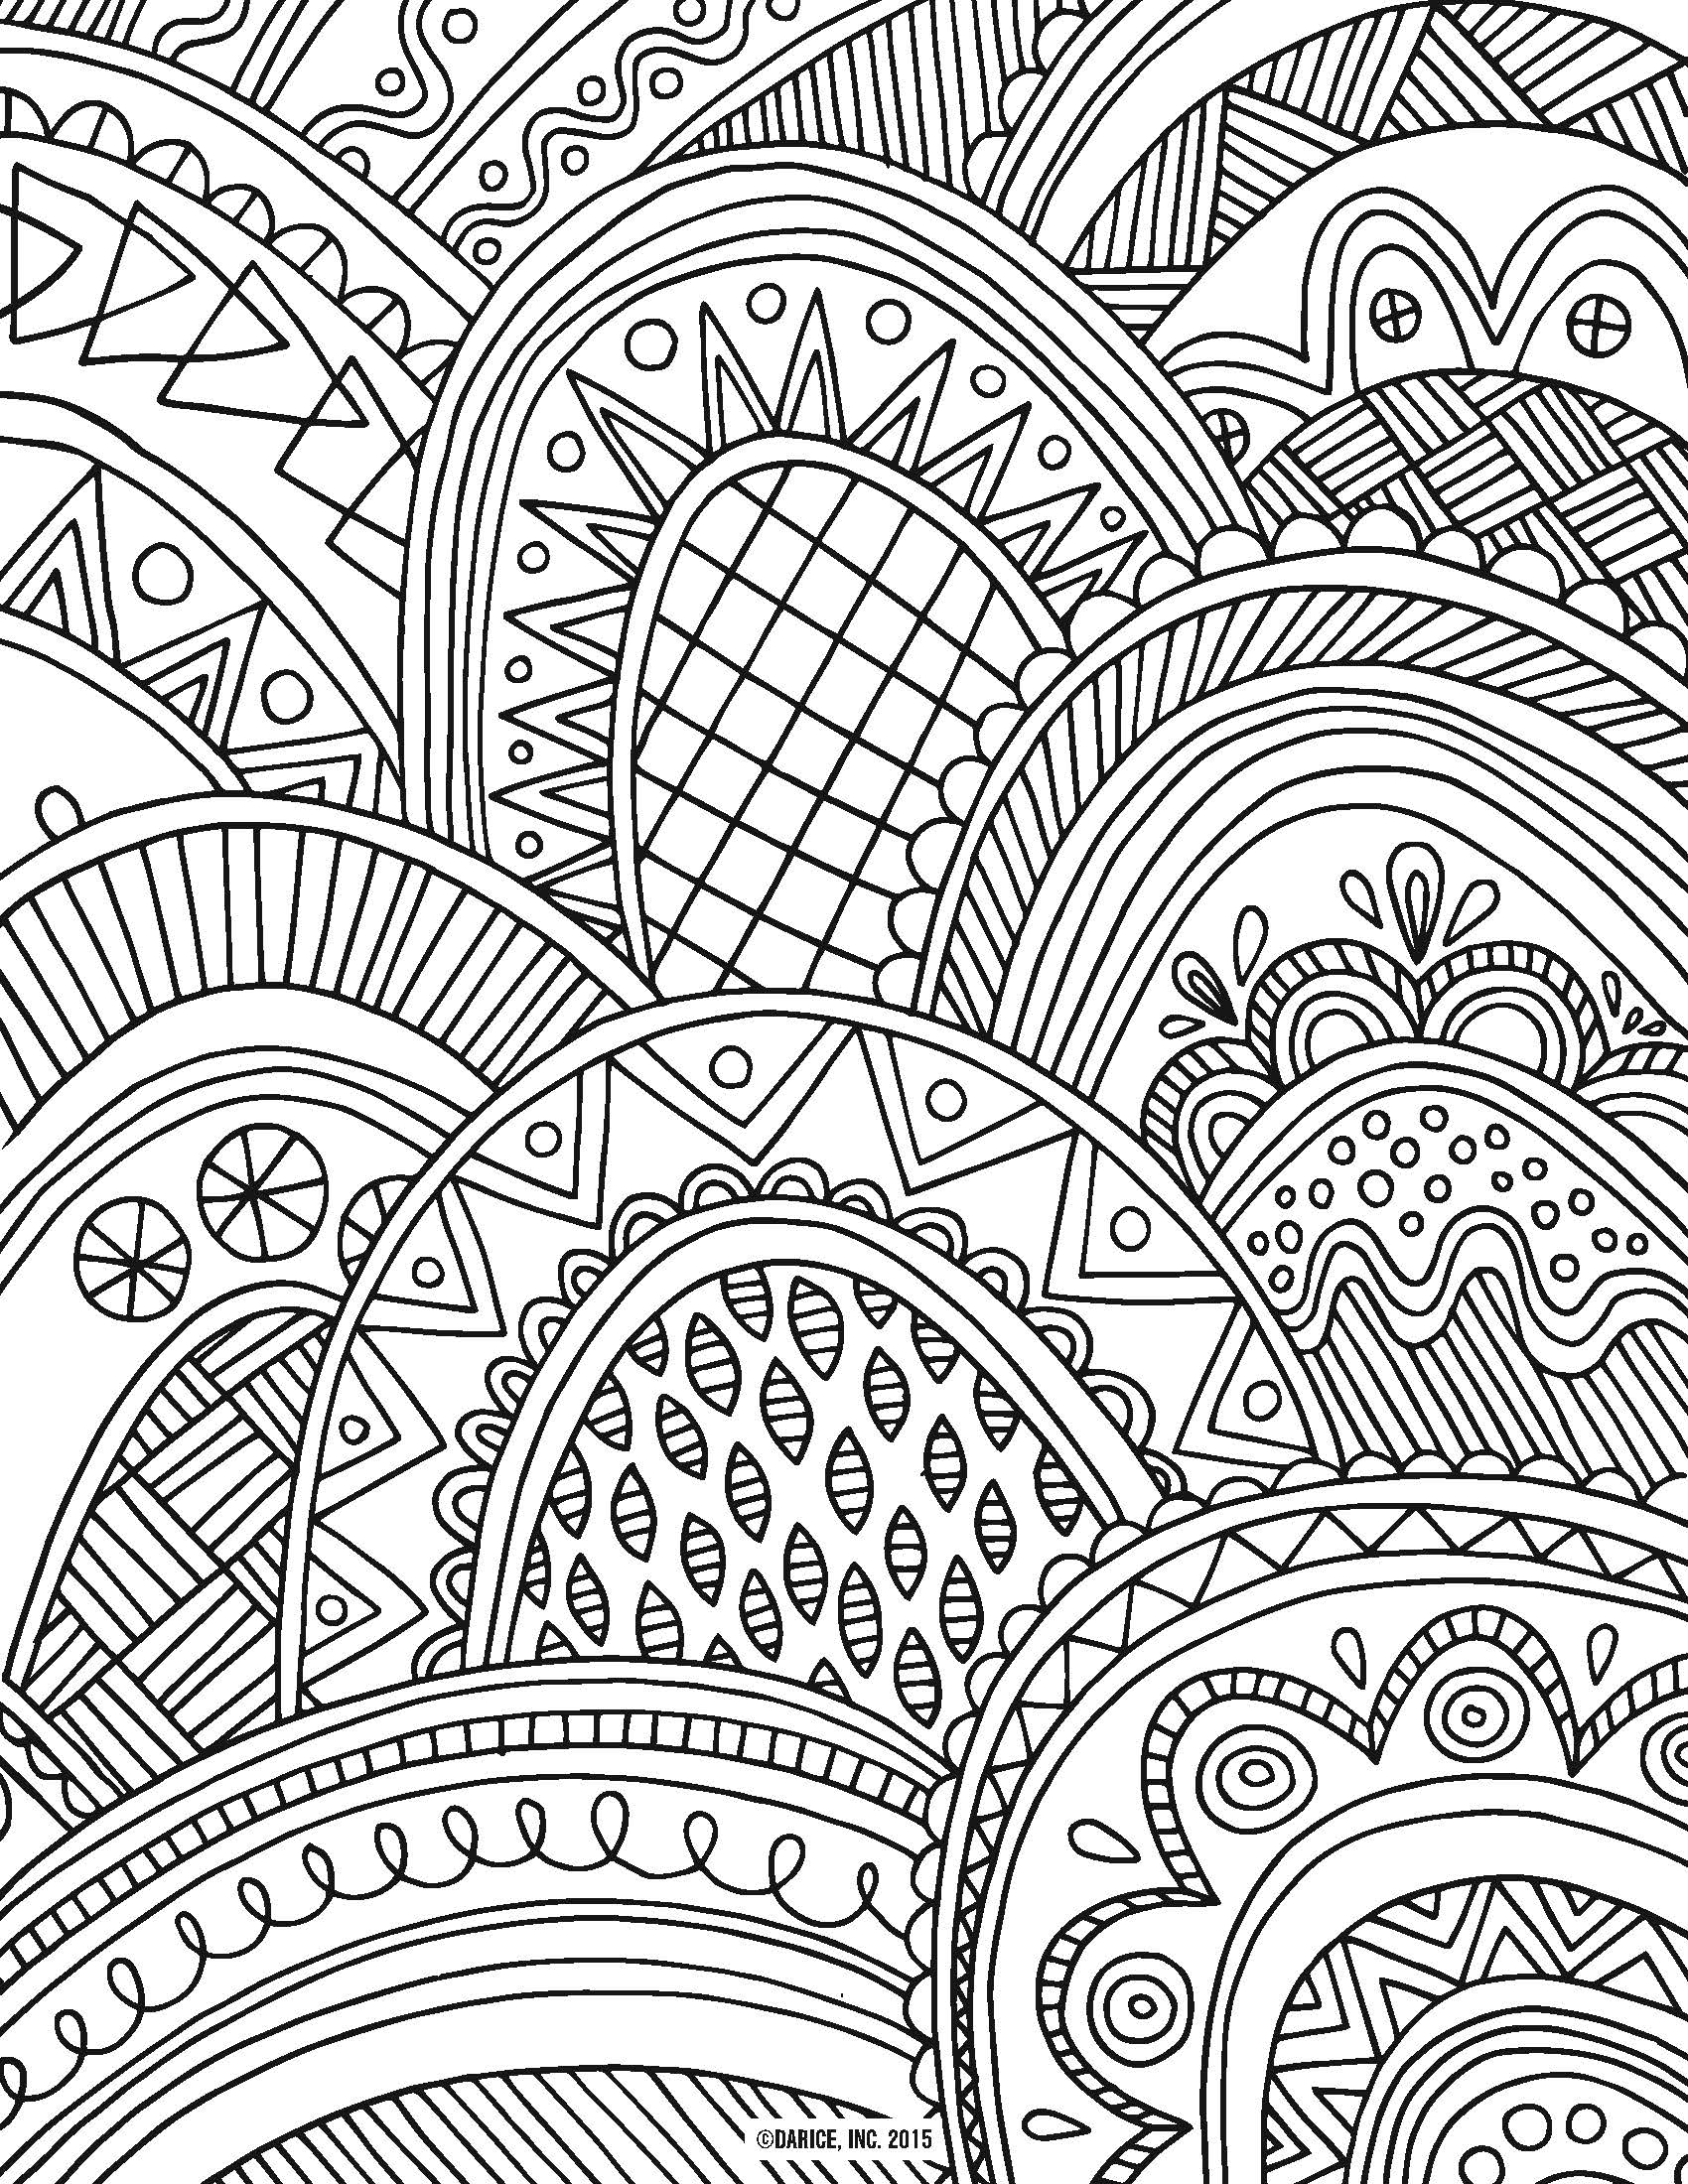 color pages online top 25 free printable lisa frank coloring pages online pages online color